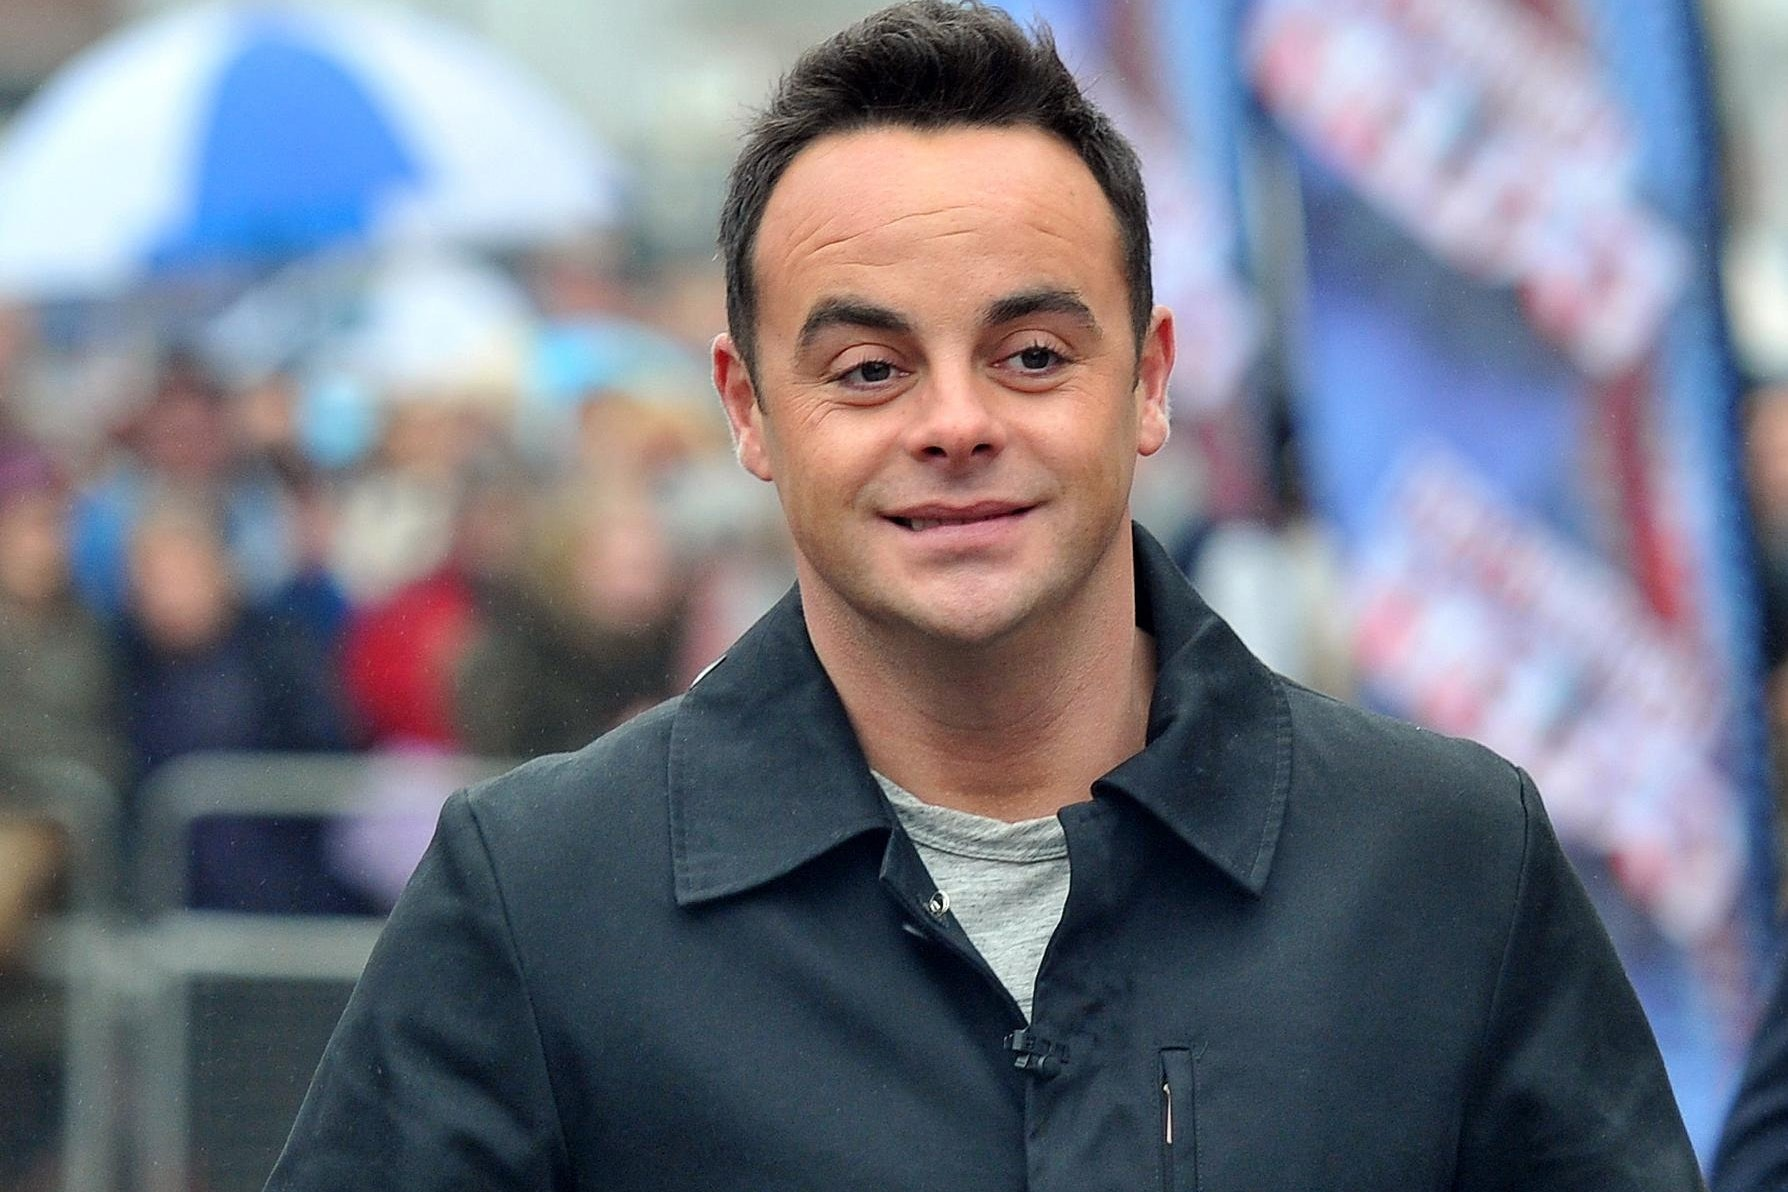 Ant McPartlin at the Britain's Got Talent Auditions – Blackpool